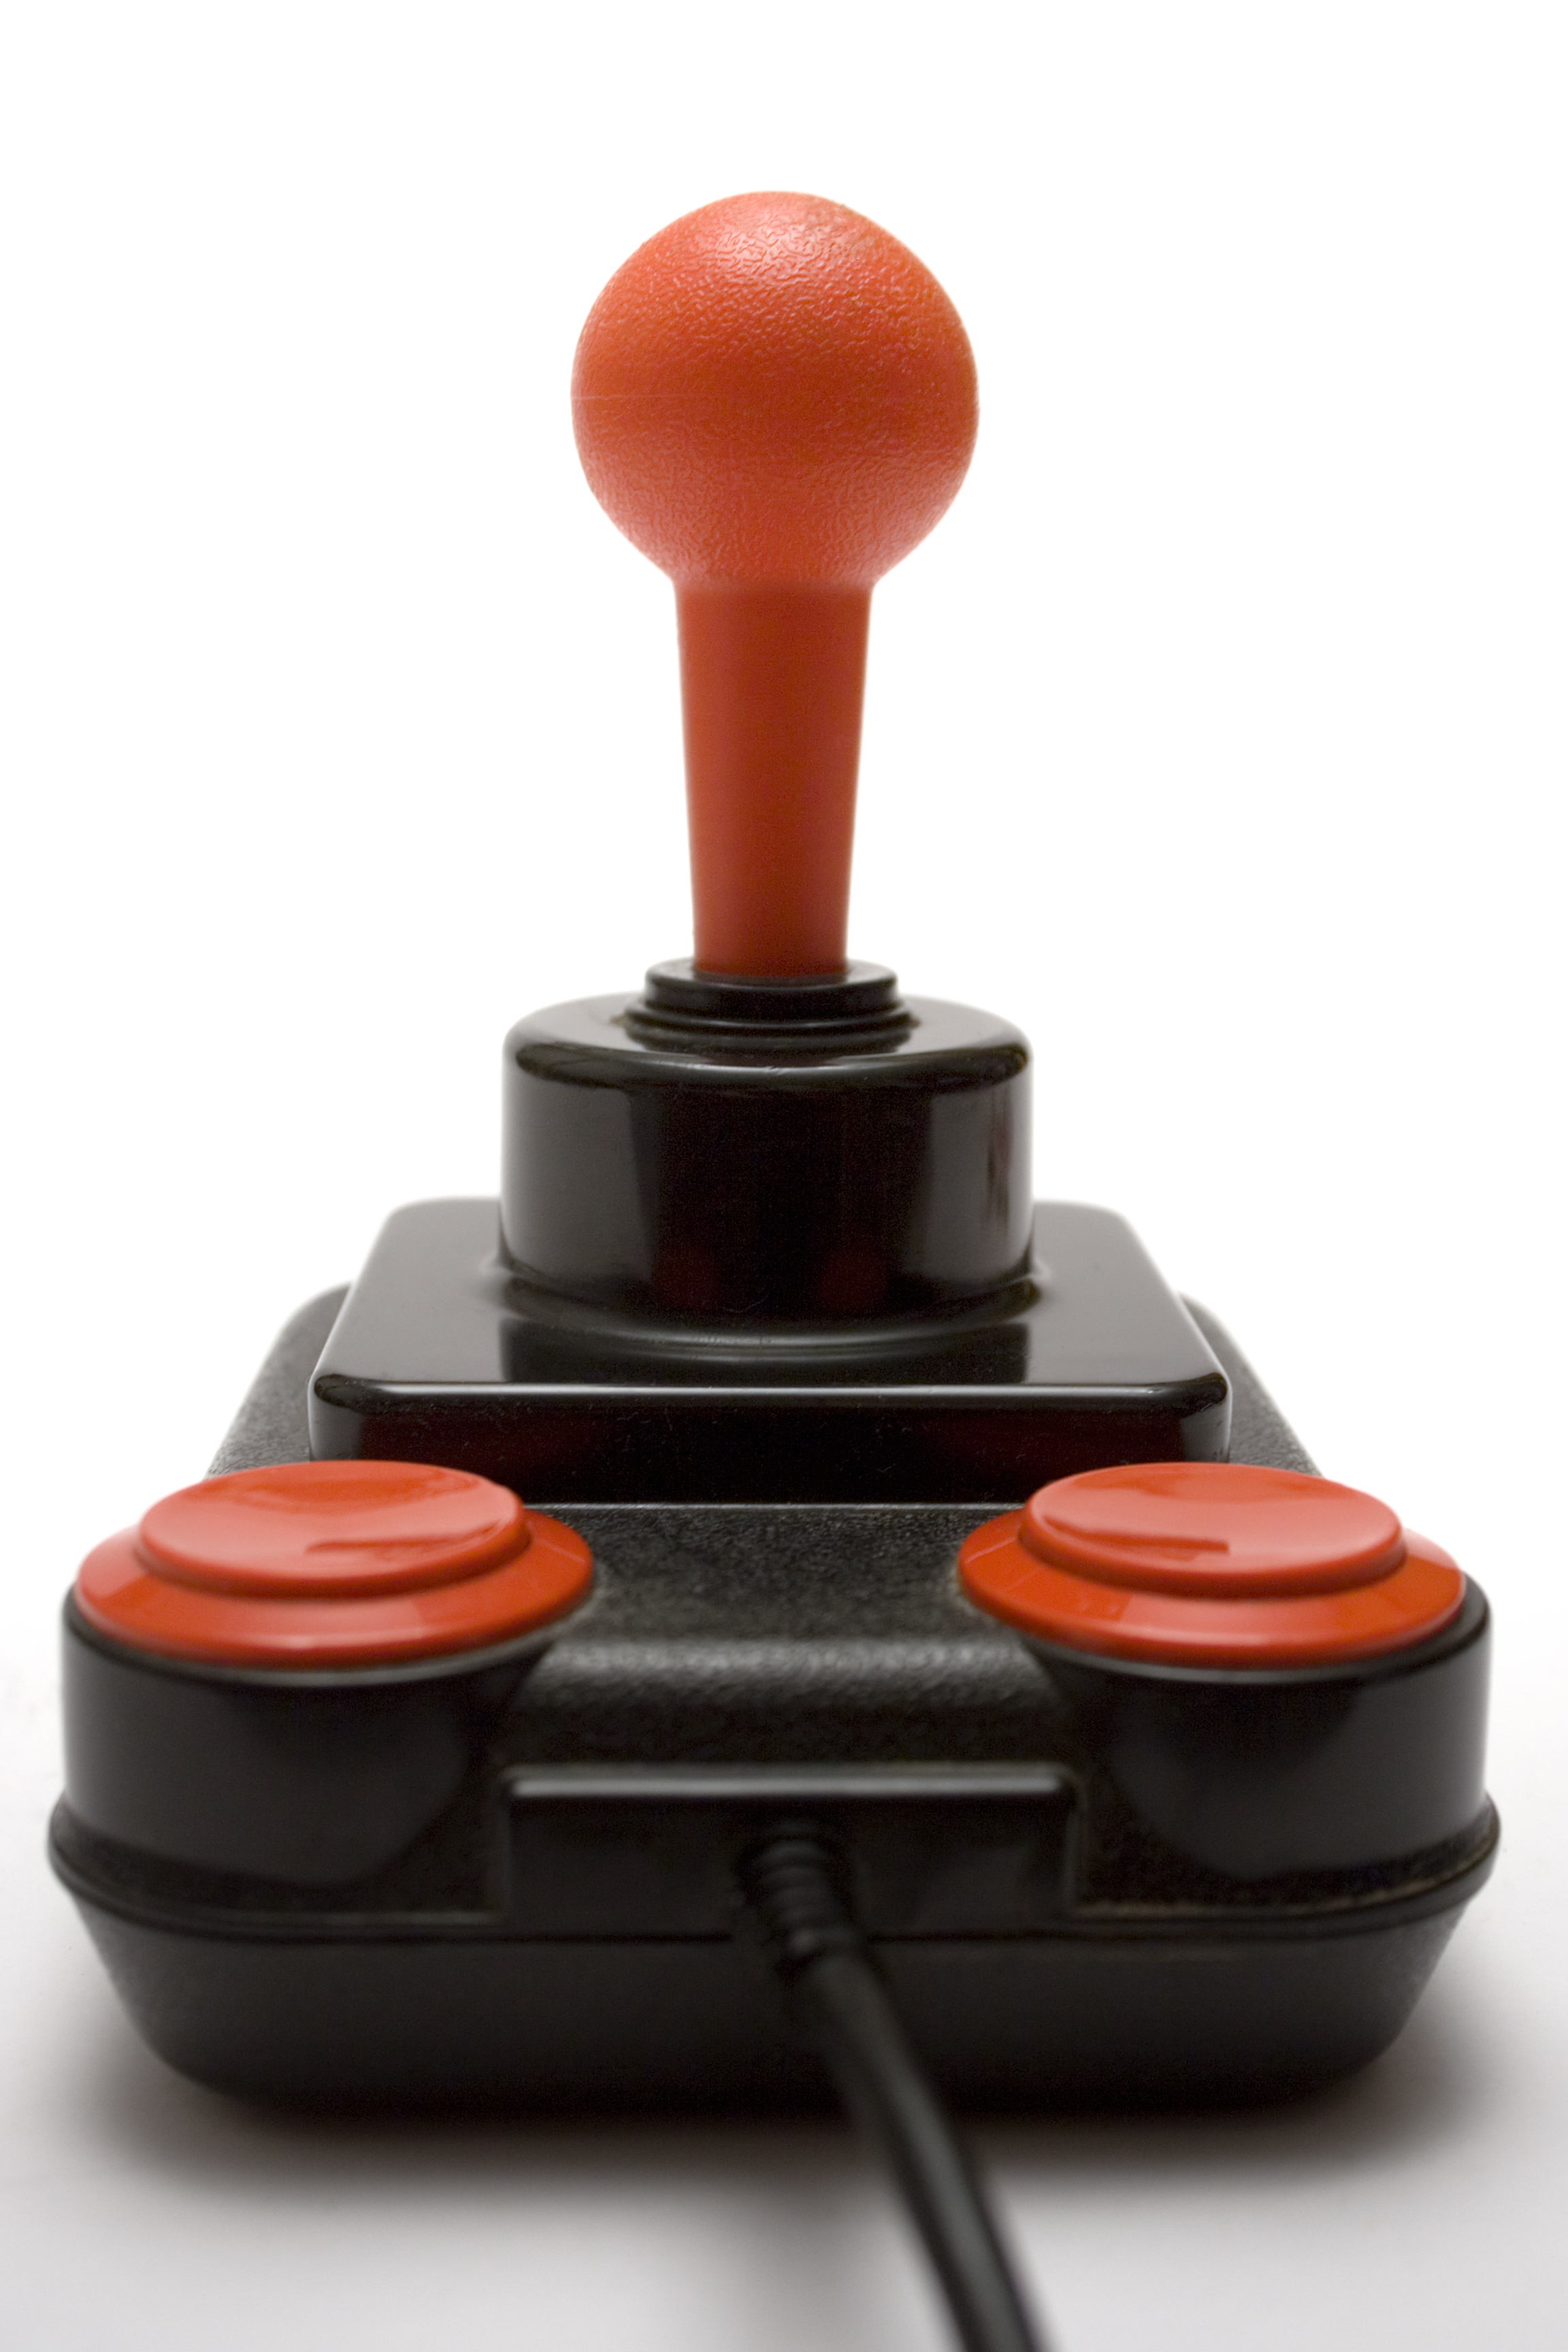 Could a Joystick Help Alcoholics Avoid Relapse?